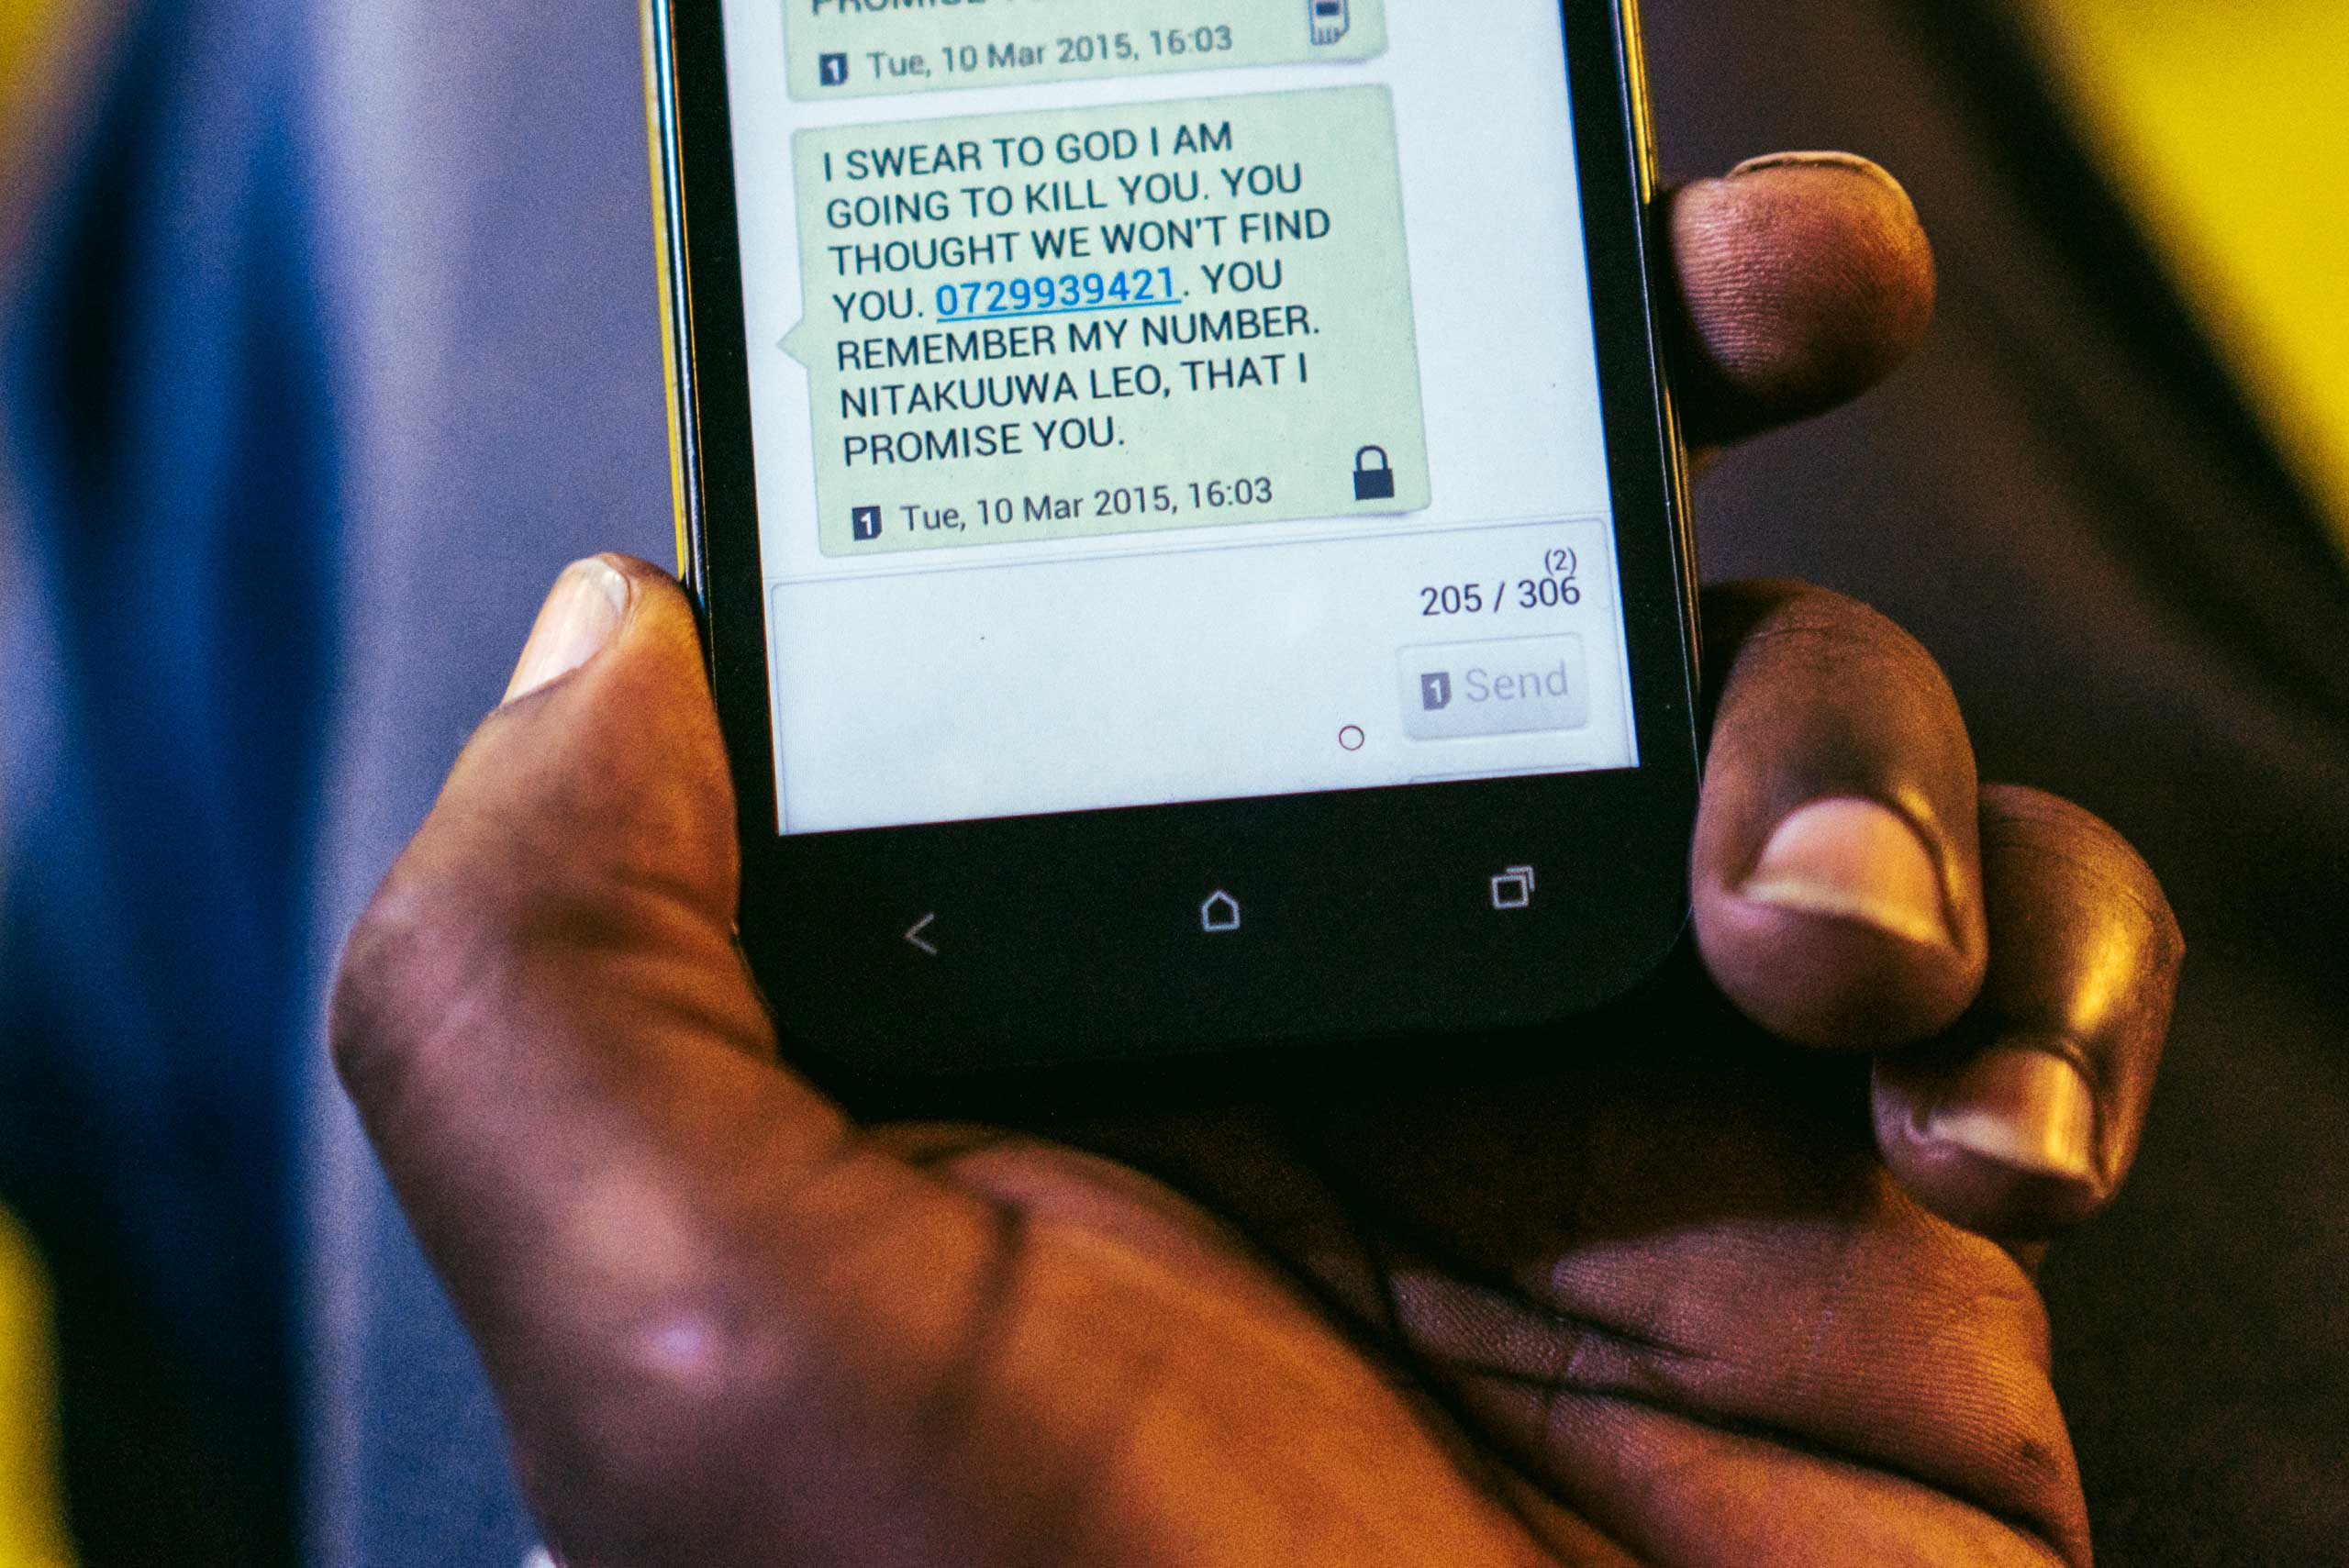 A text message a gay refugee from Uganda received from an unknown number soon after he arrived in Kenya. The sender threatened to kill him that same day, forcing him to go into hiding. He has since been resettled in the U.S.